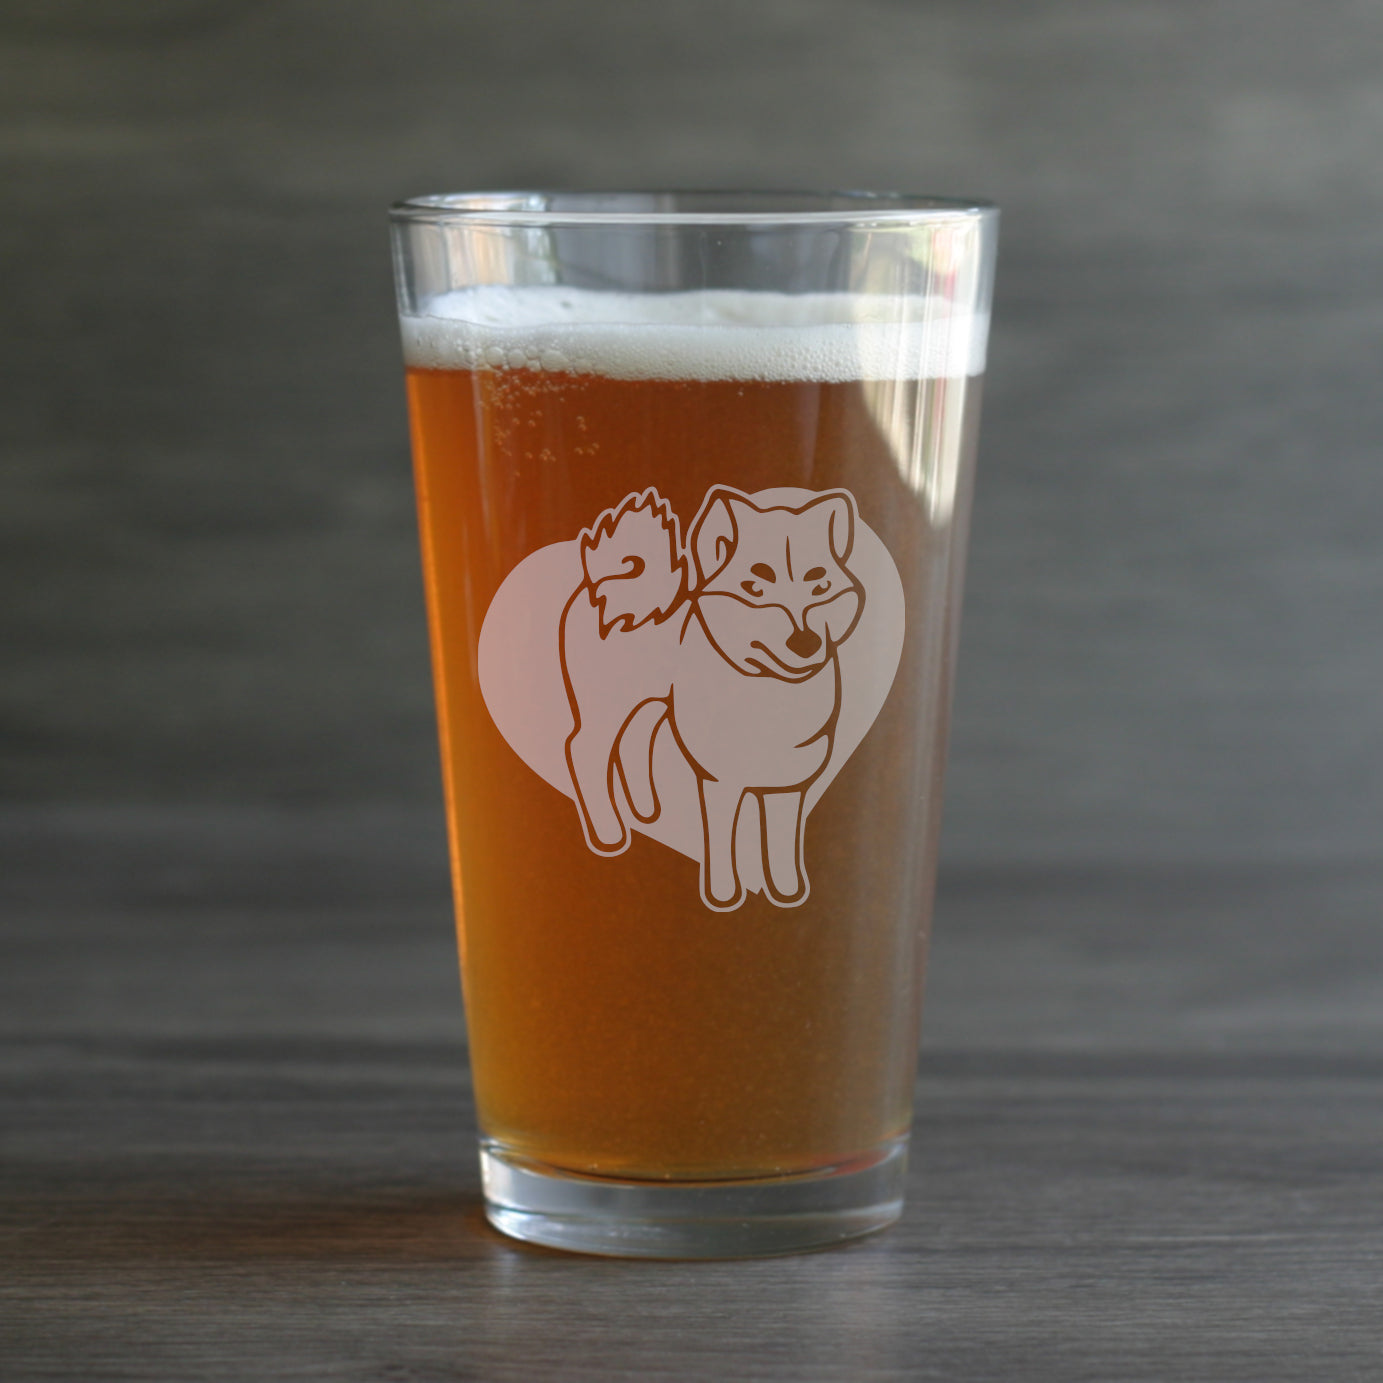 Shiba Akita dog pint glass by Bread and Badger